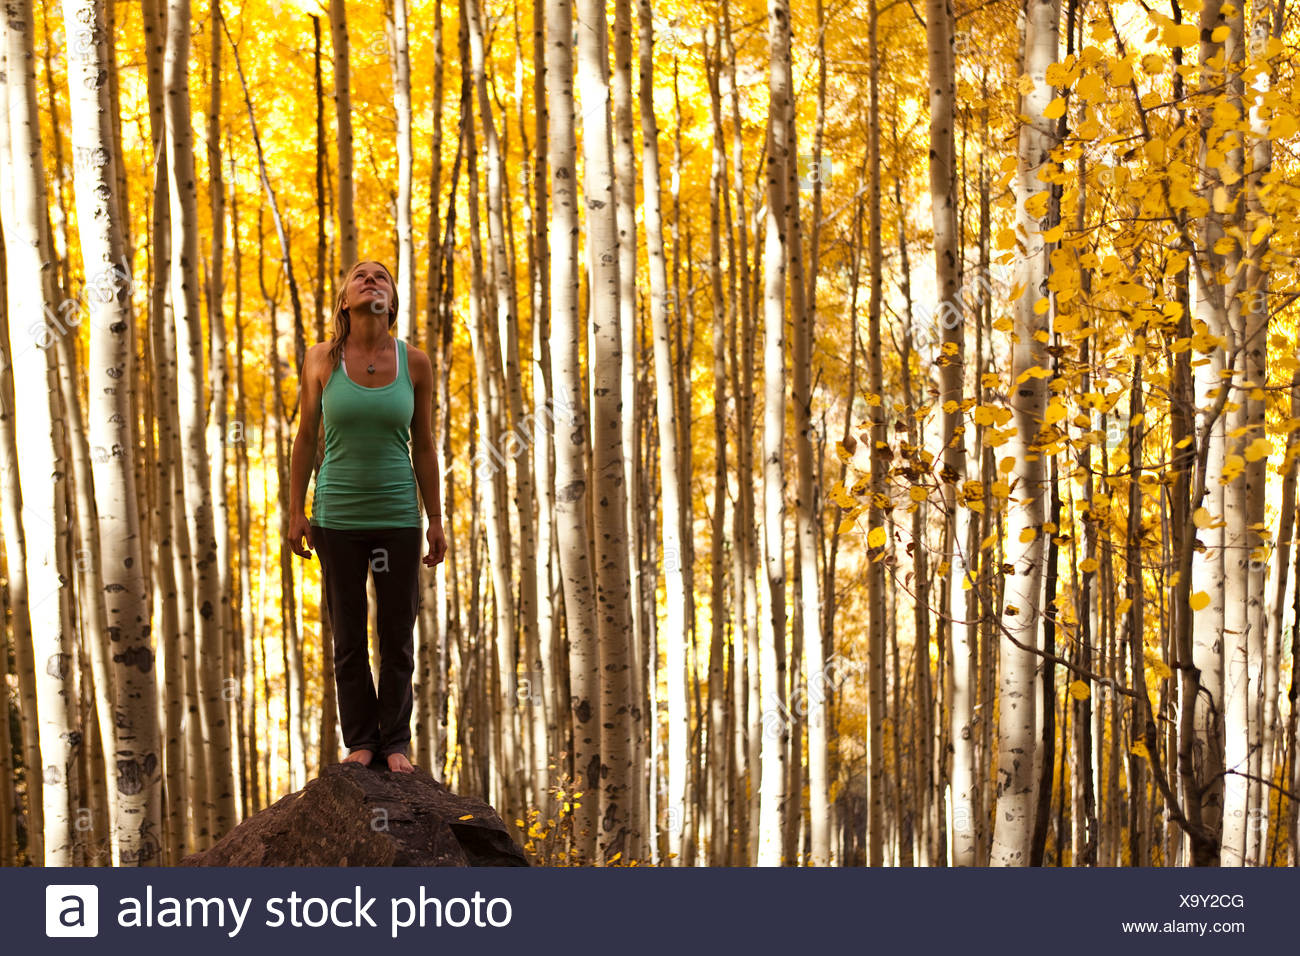 A young woman standing peacefully on a rock in the midst of a sea of gold aspen leaves. - Stock Image